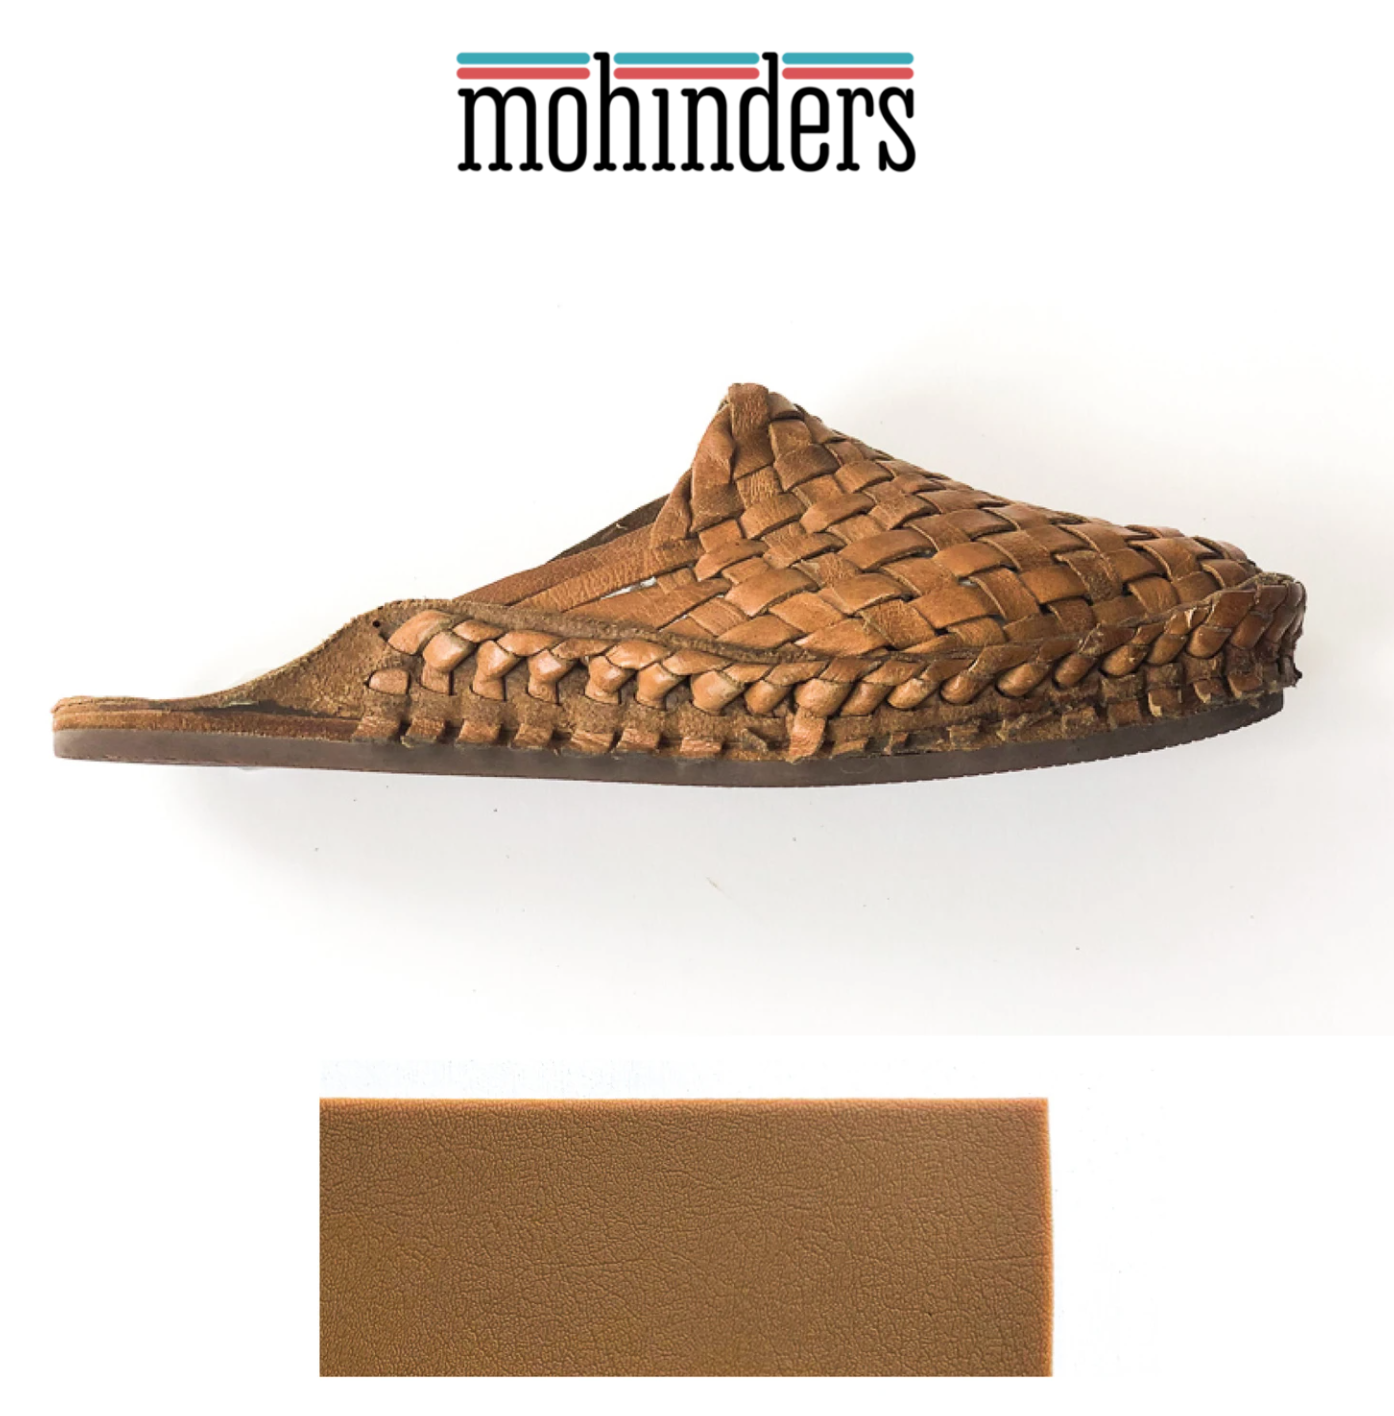 Mohinders Re-Soling